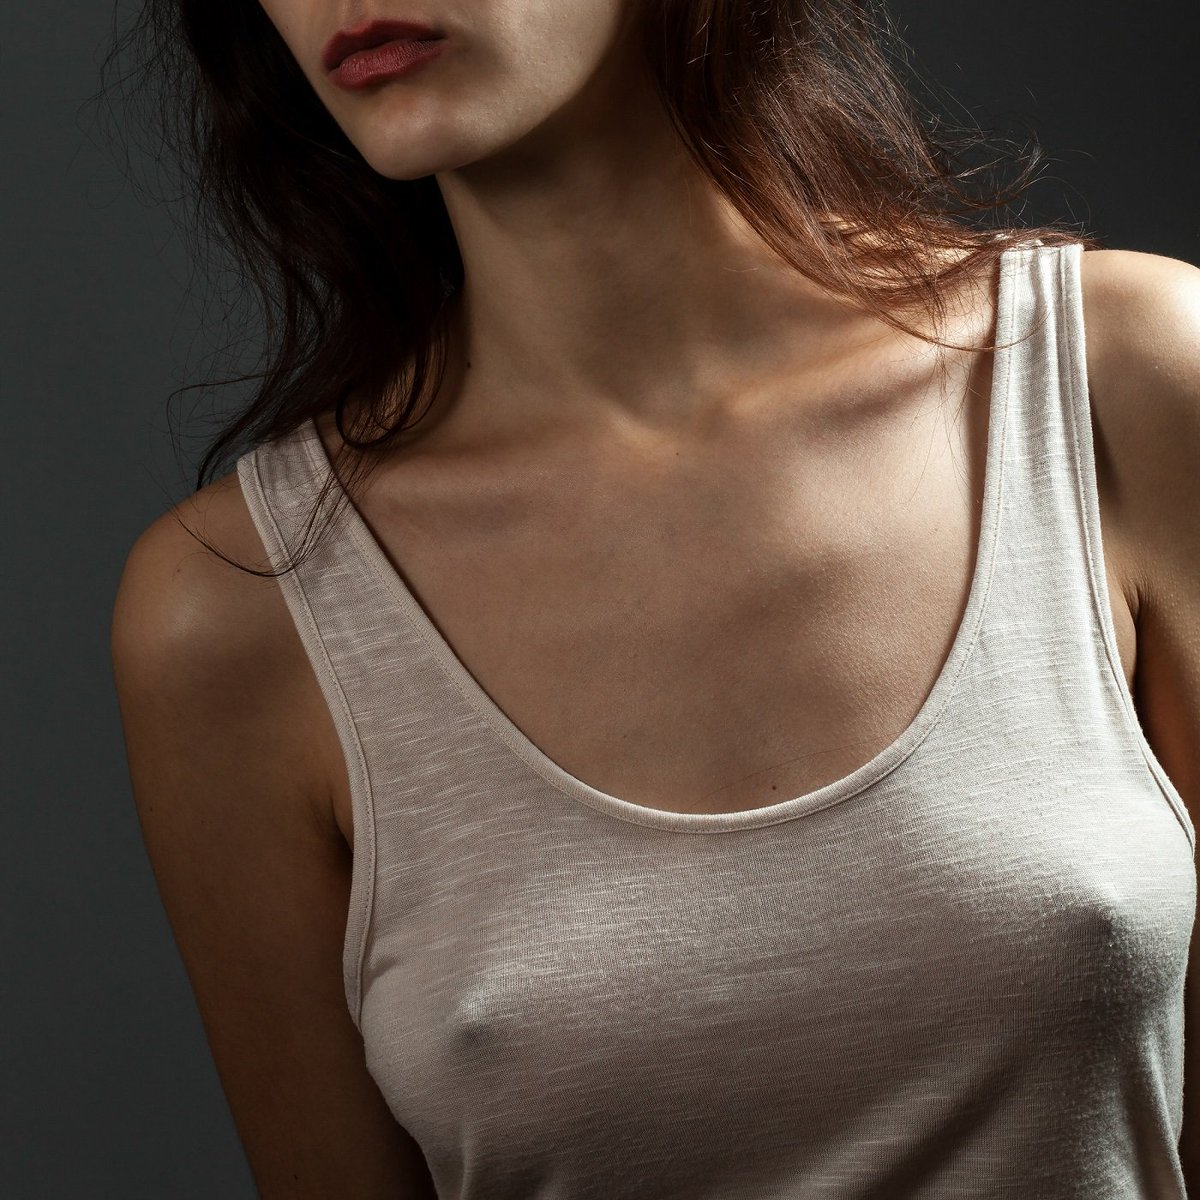 Itchy Breasts Causes And Remedies